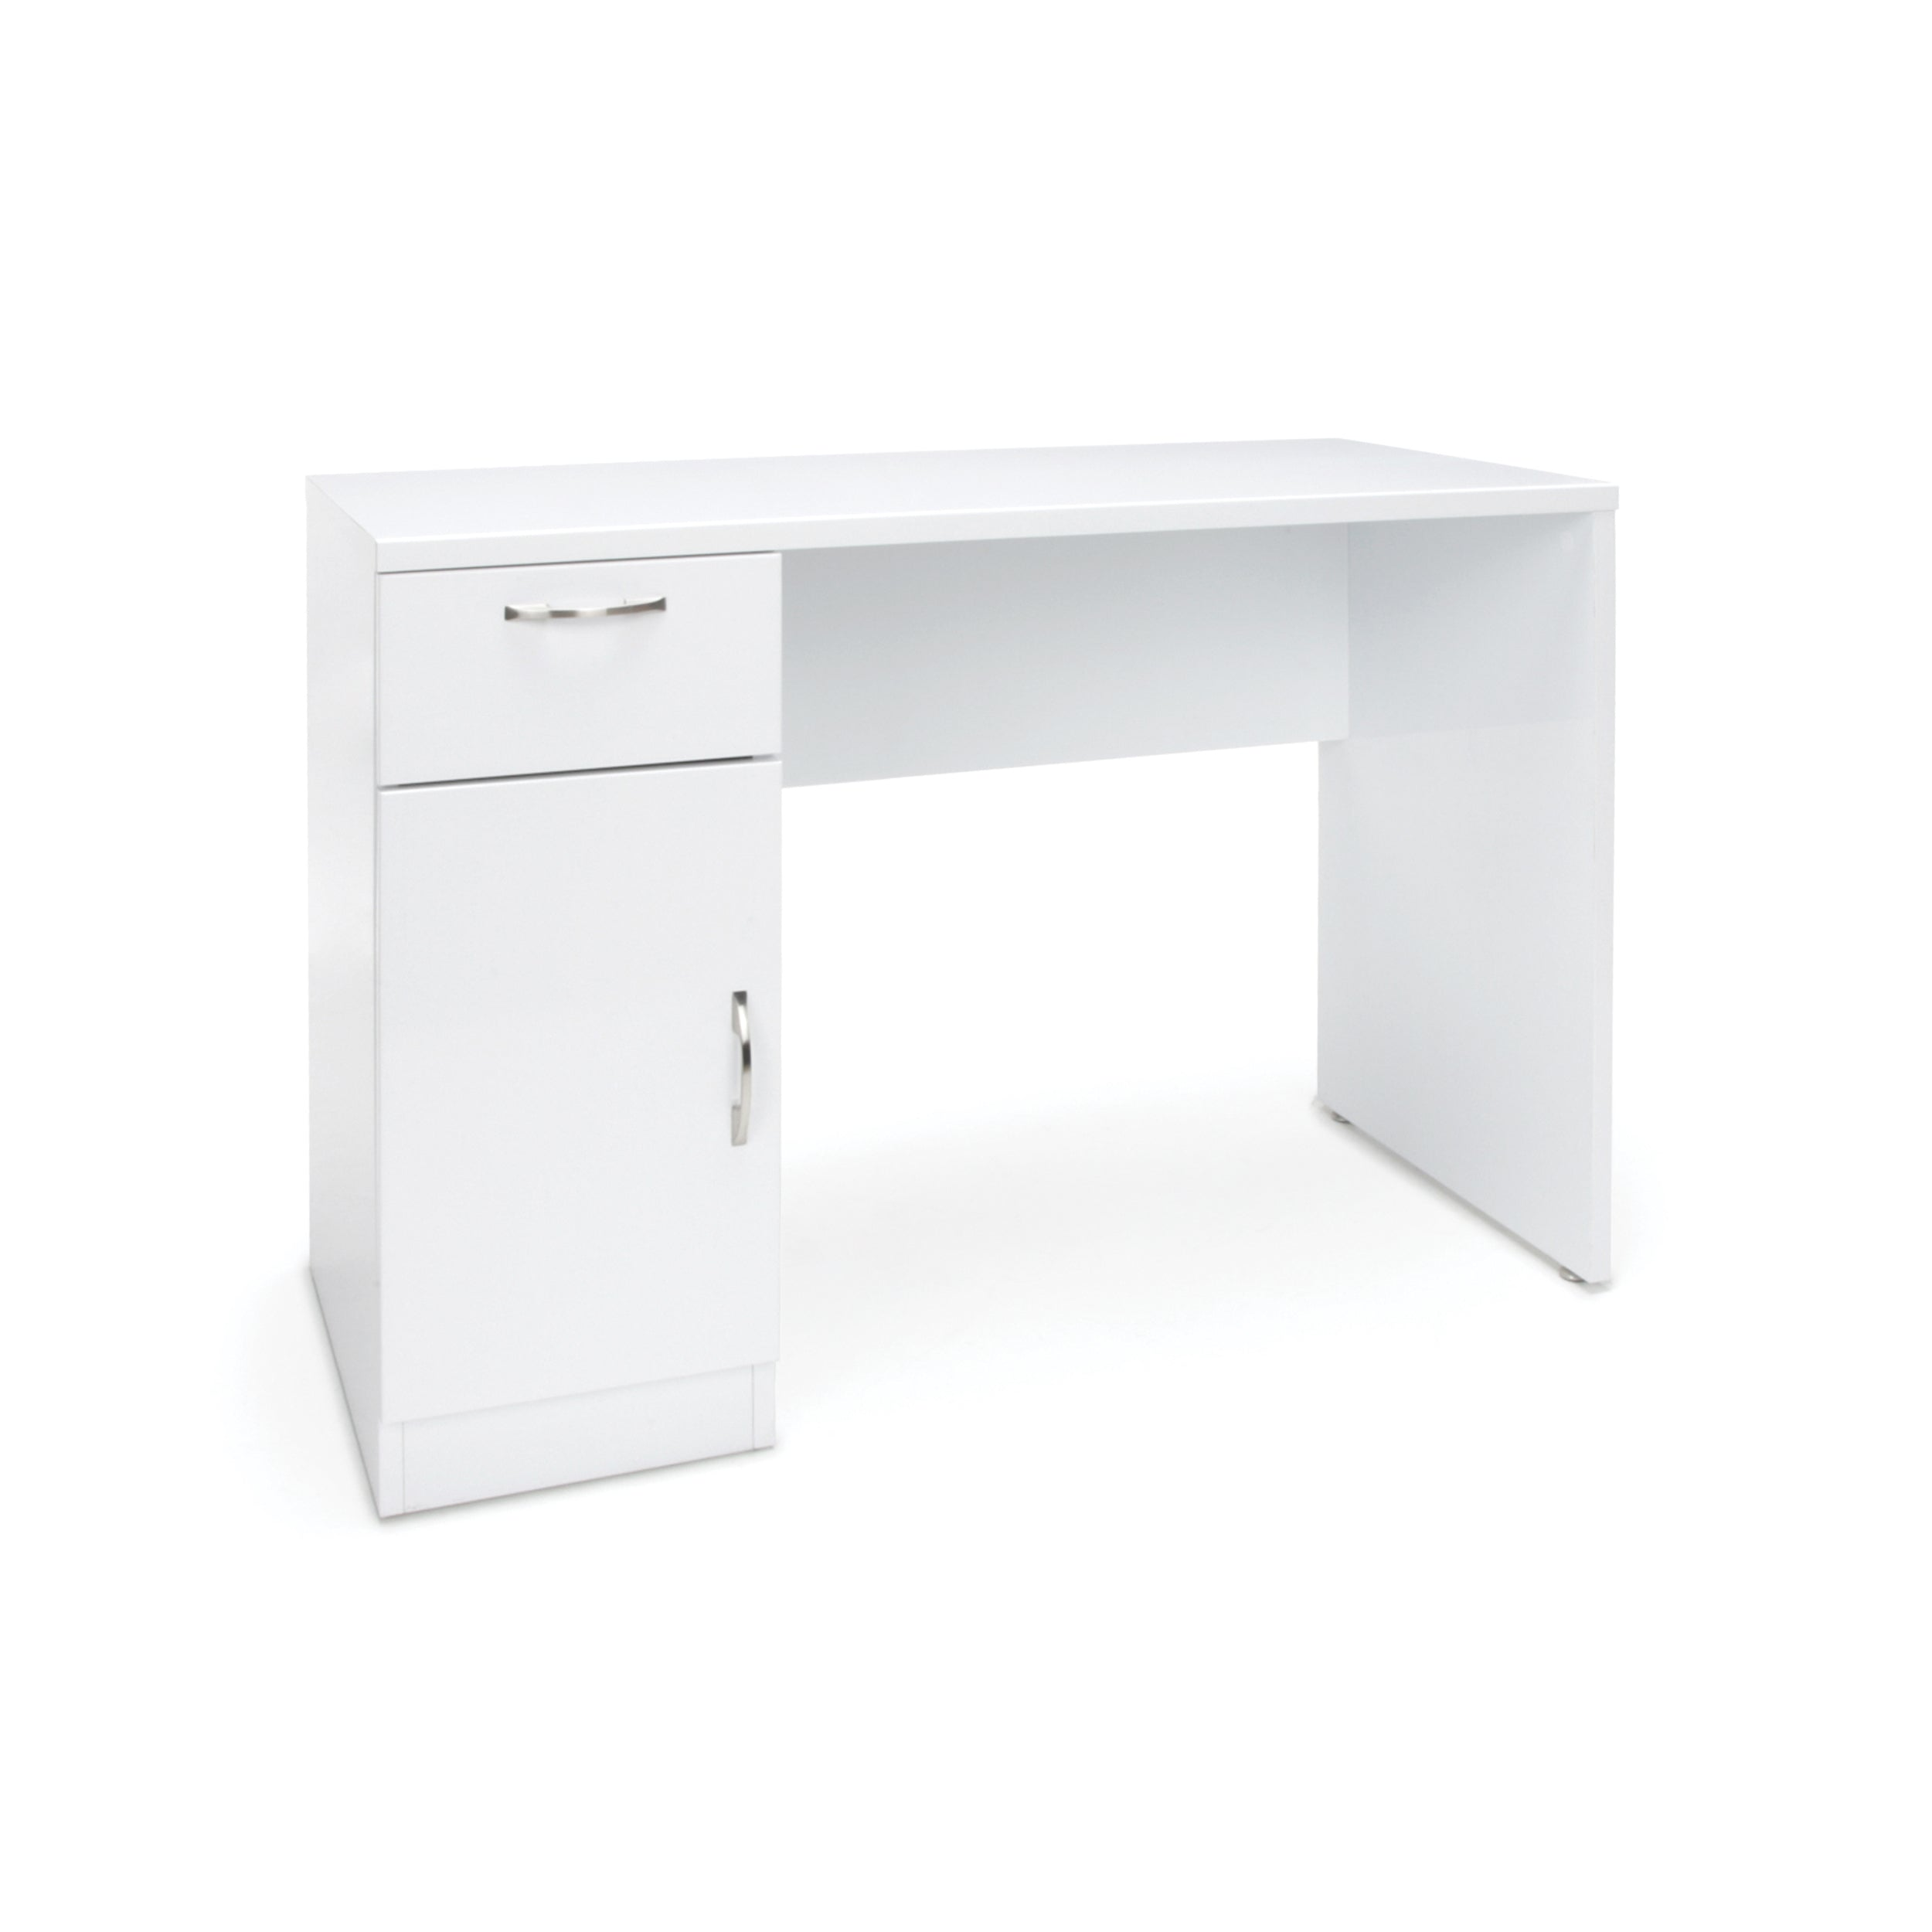 Single Pedestal Solid Panel Desk with Drawer & Cabinet